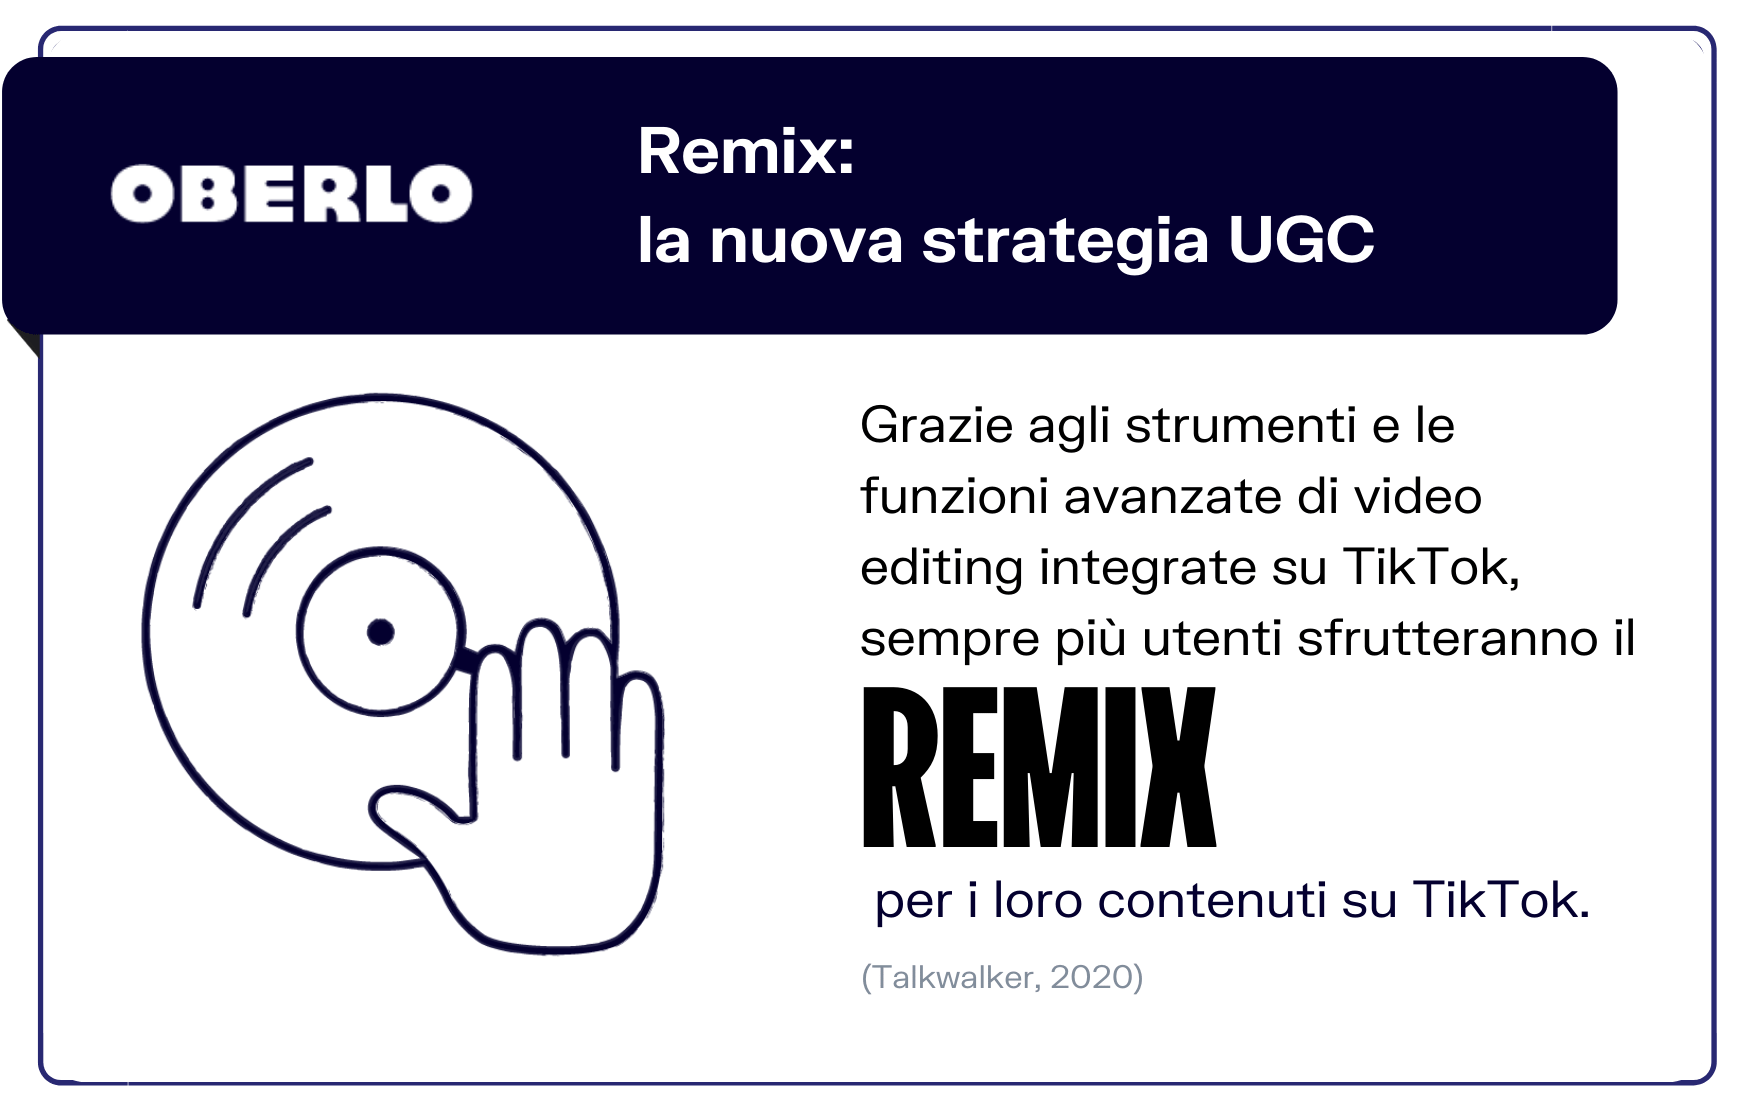 User generated content: remix